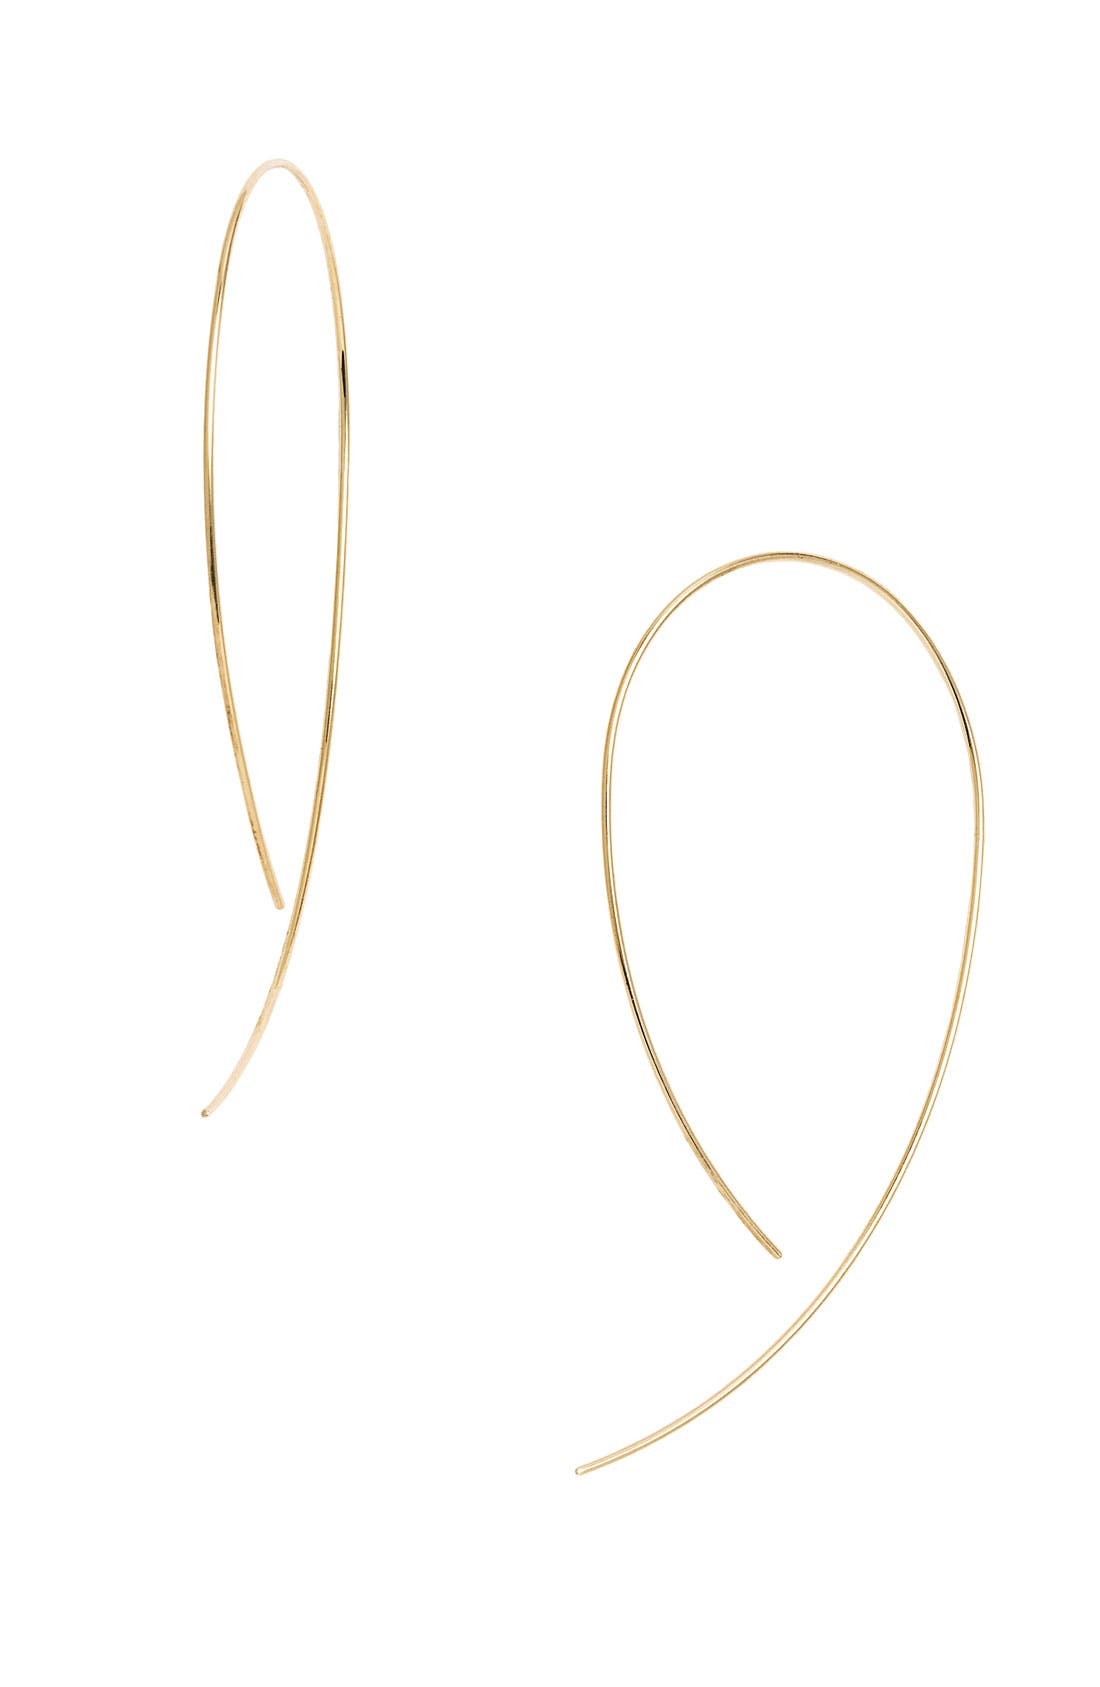 Main Image - Lana Jewelry 'Hooked on Hoop' Earrings